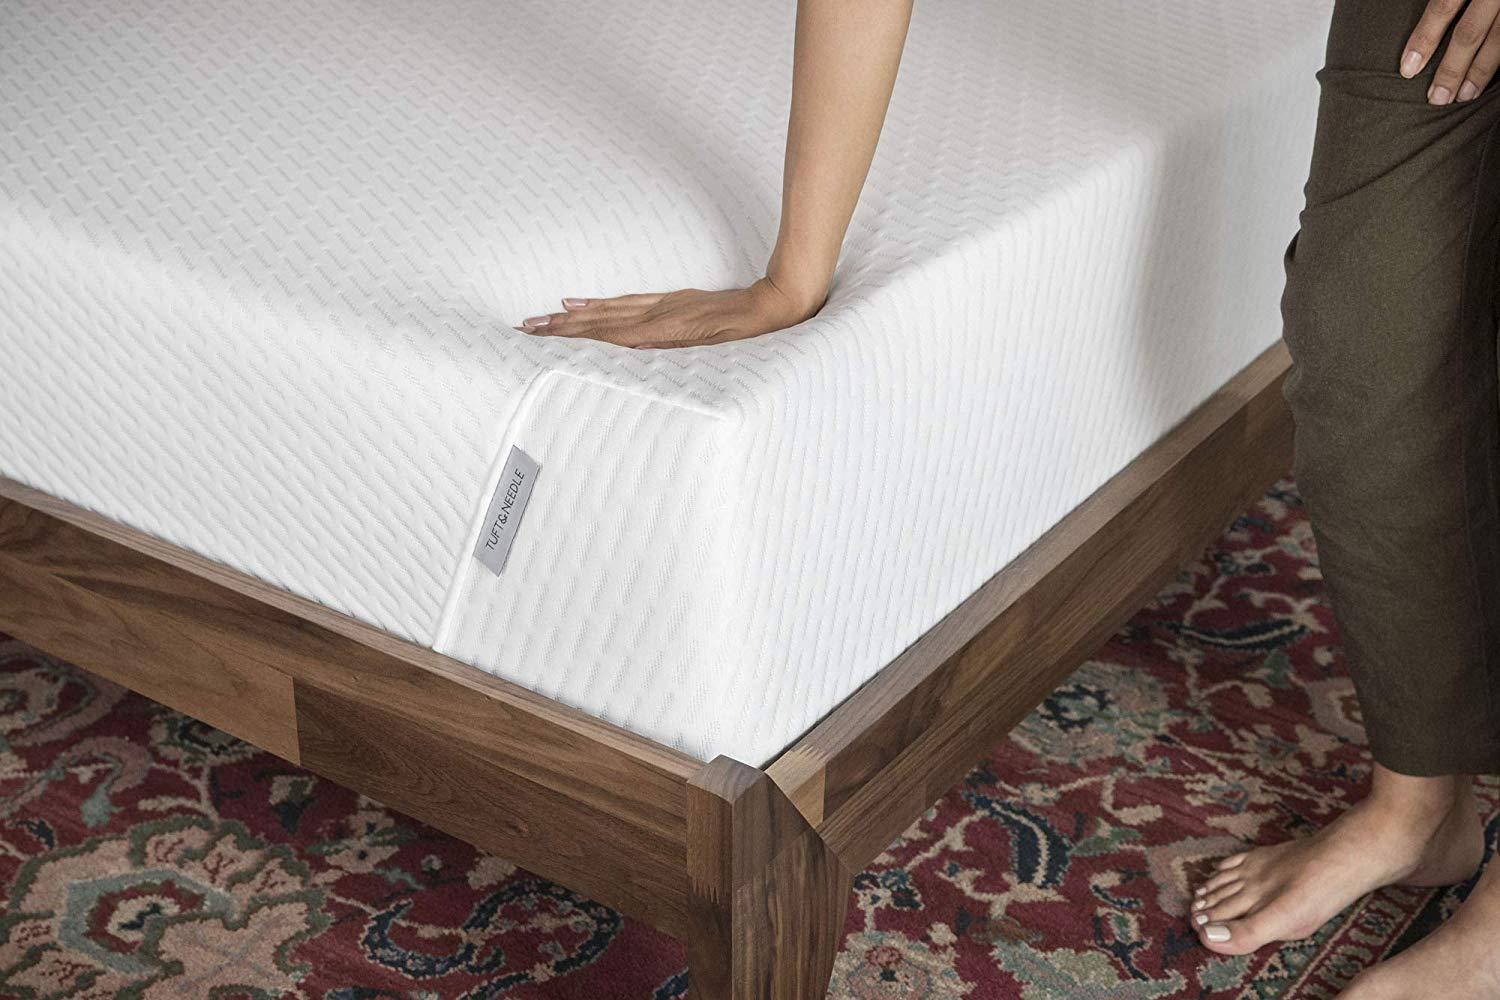 Performance Of Tuft and Needle memory foam mattress